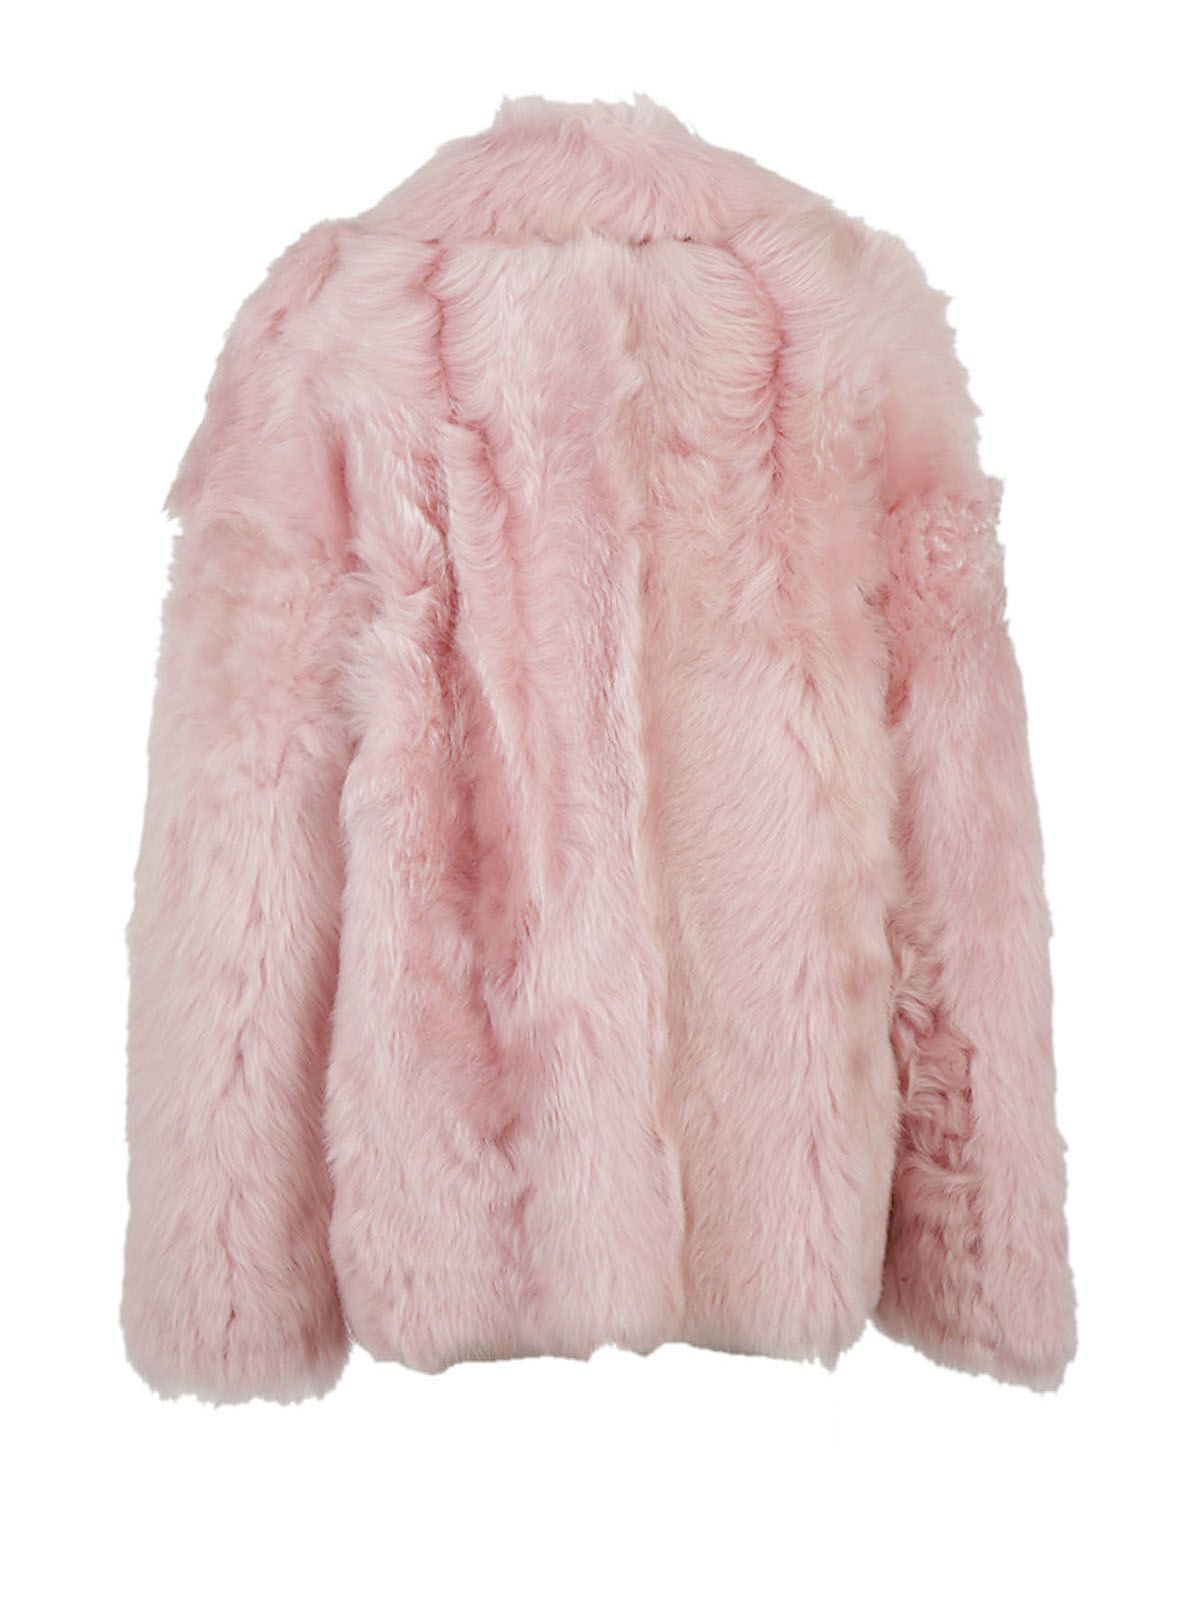 Rochas - Rochas Double Breasted Coat - Pink, Women's Coats | Italist